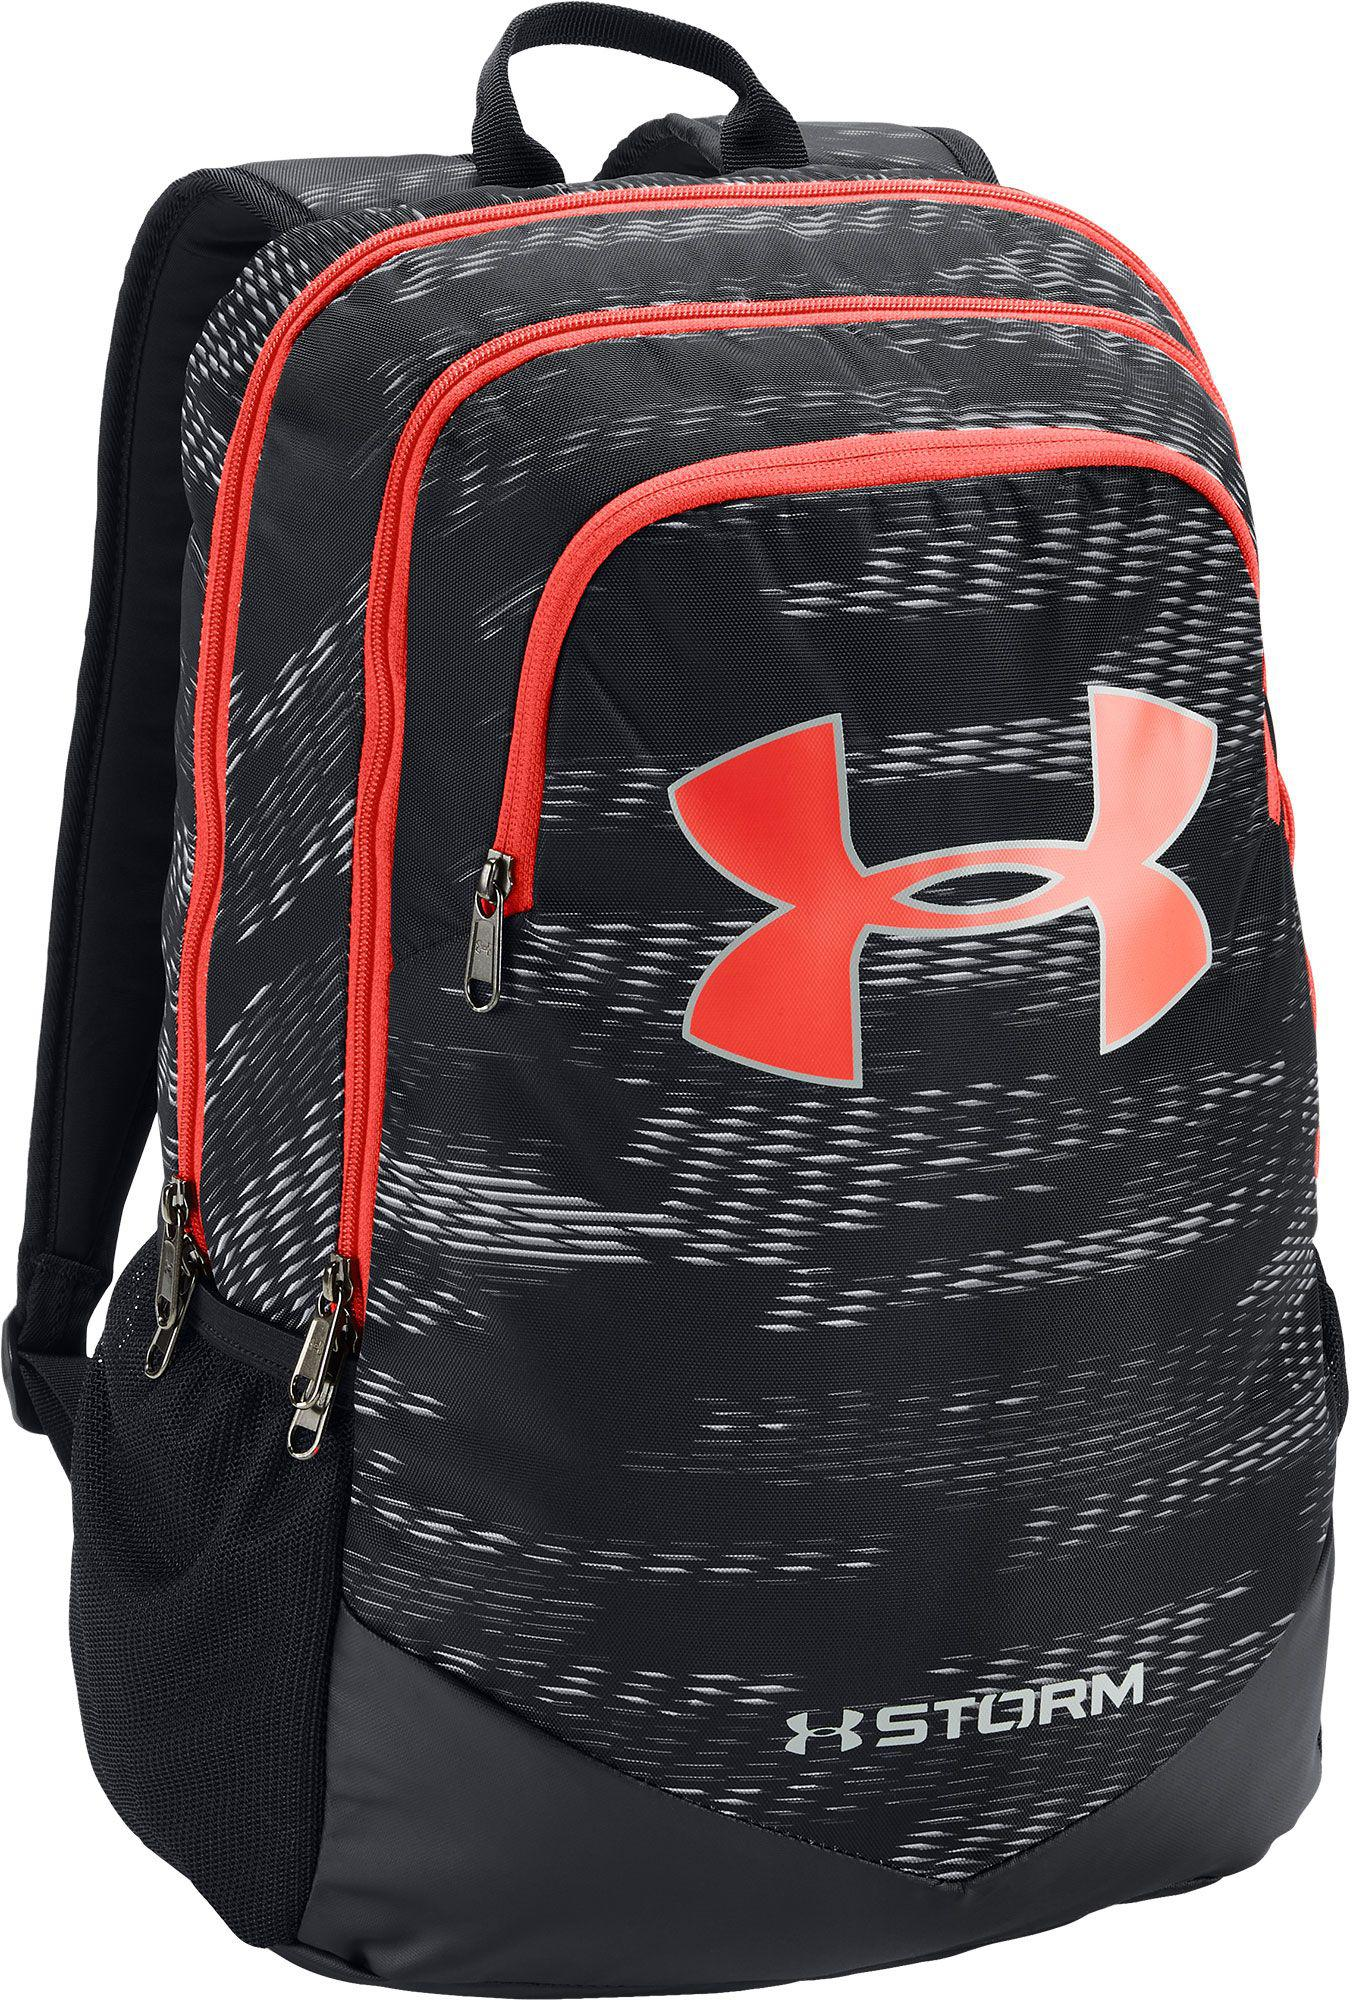 481c5a986298 Lyst - Under Armour Youth Scrimmage Backpack in Black for Men